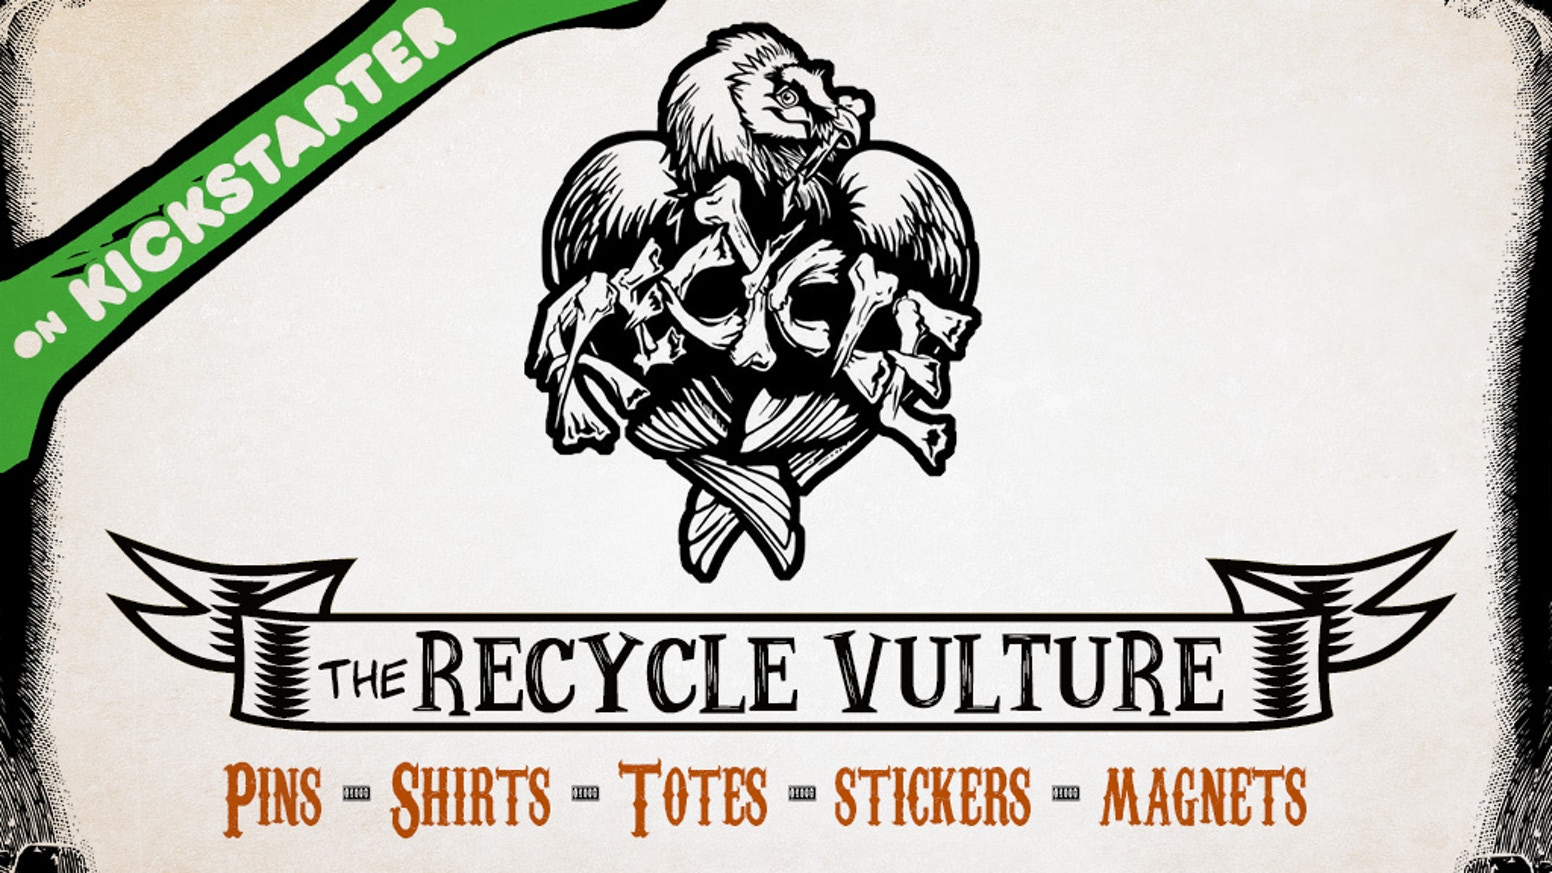 Do you love vultures? Celebrate the awesomeness of vultures and support awareness of vulture conservation with pins, shirts and more!